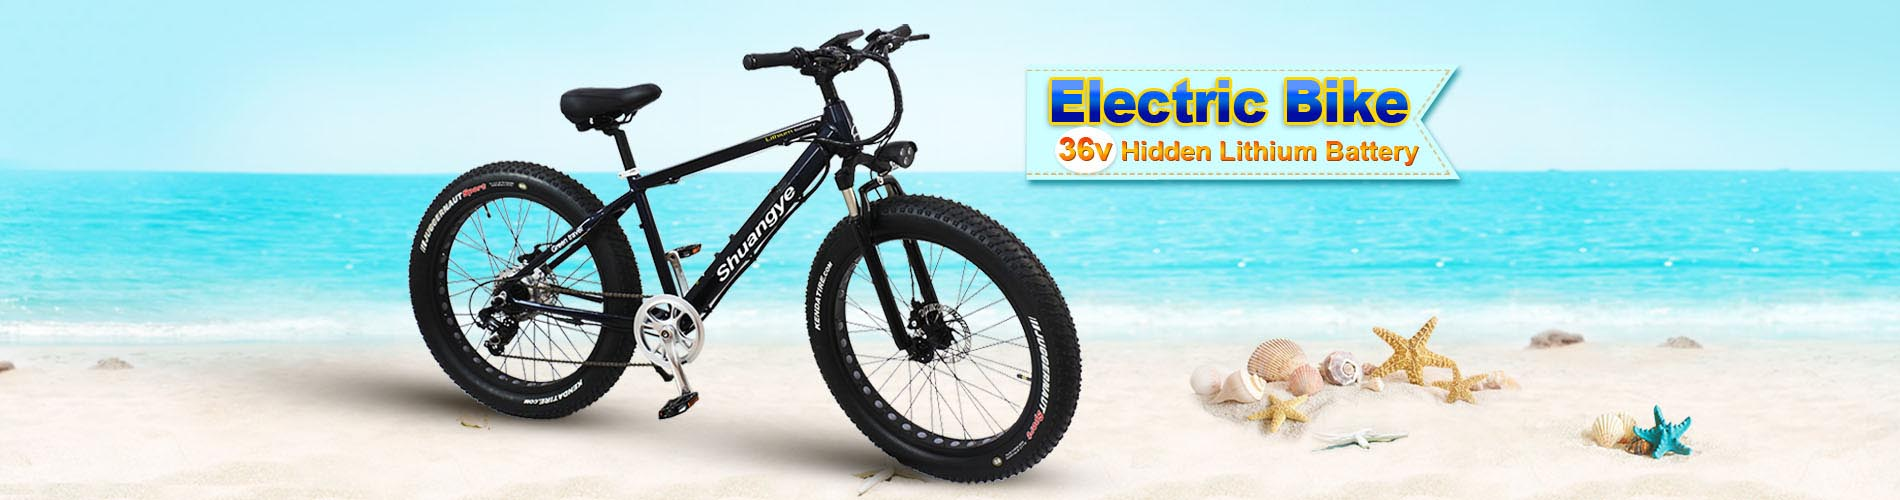 160 disc brake fastest electric bike